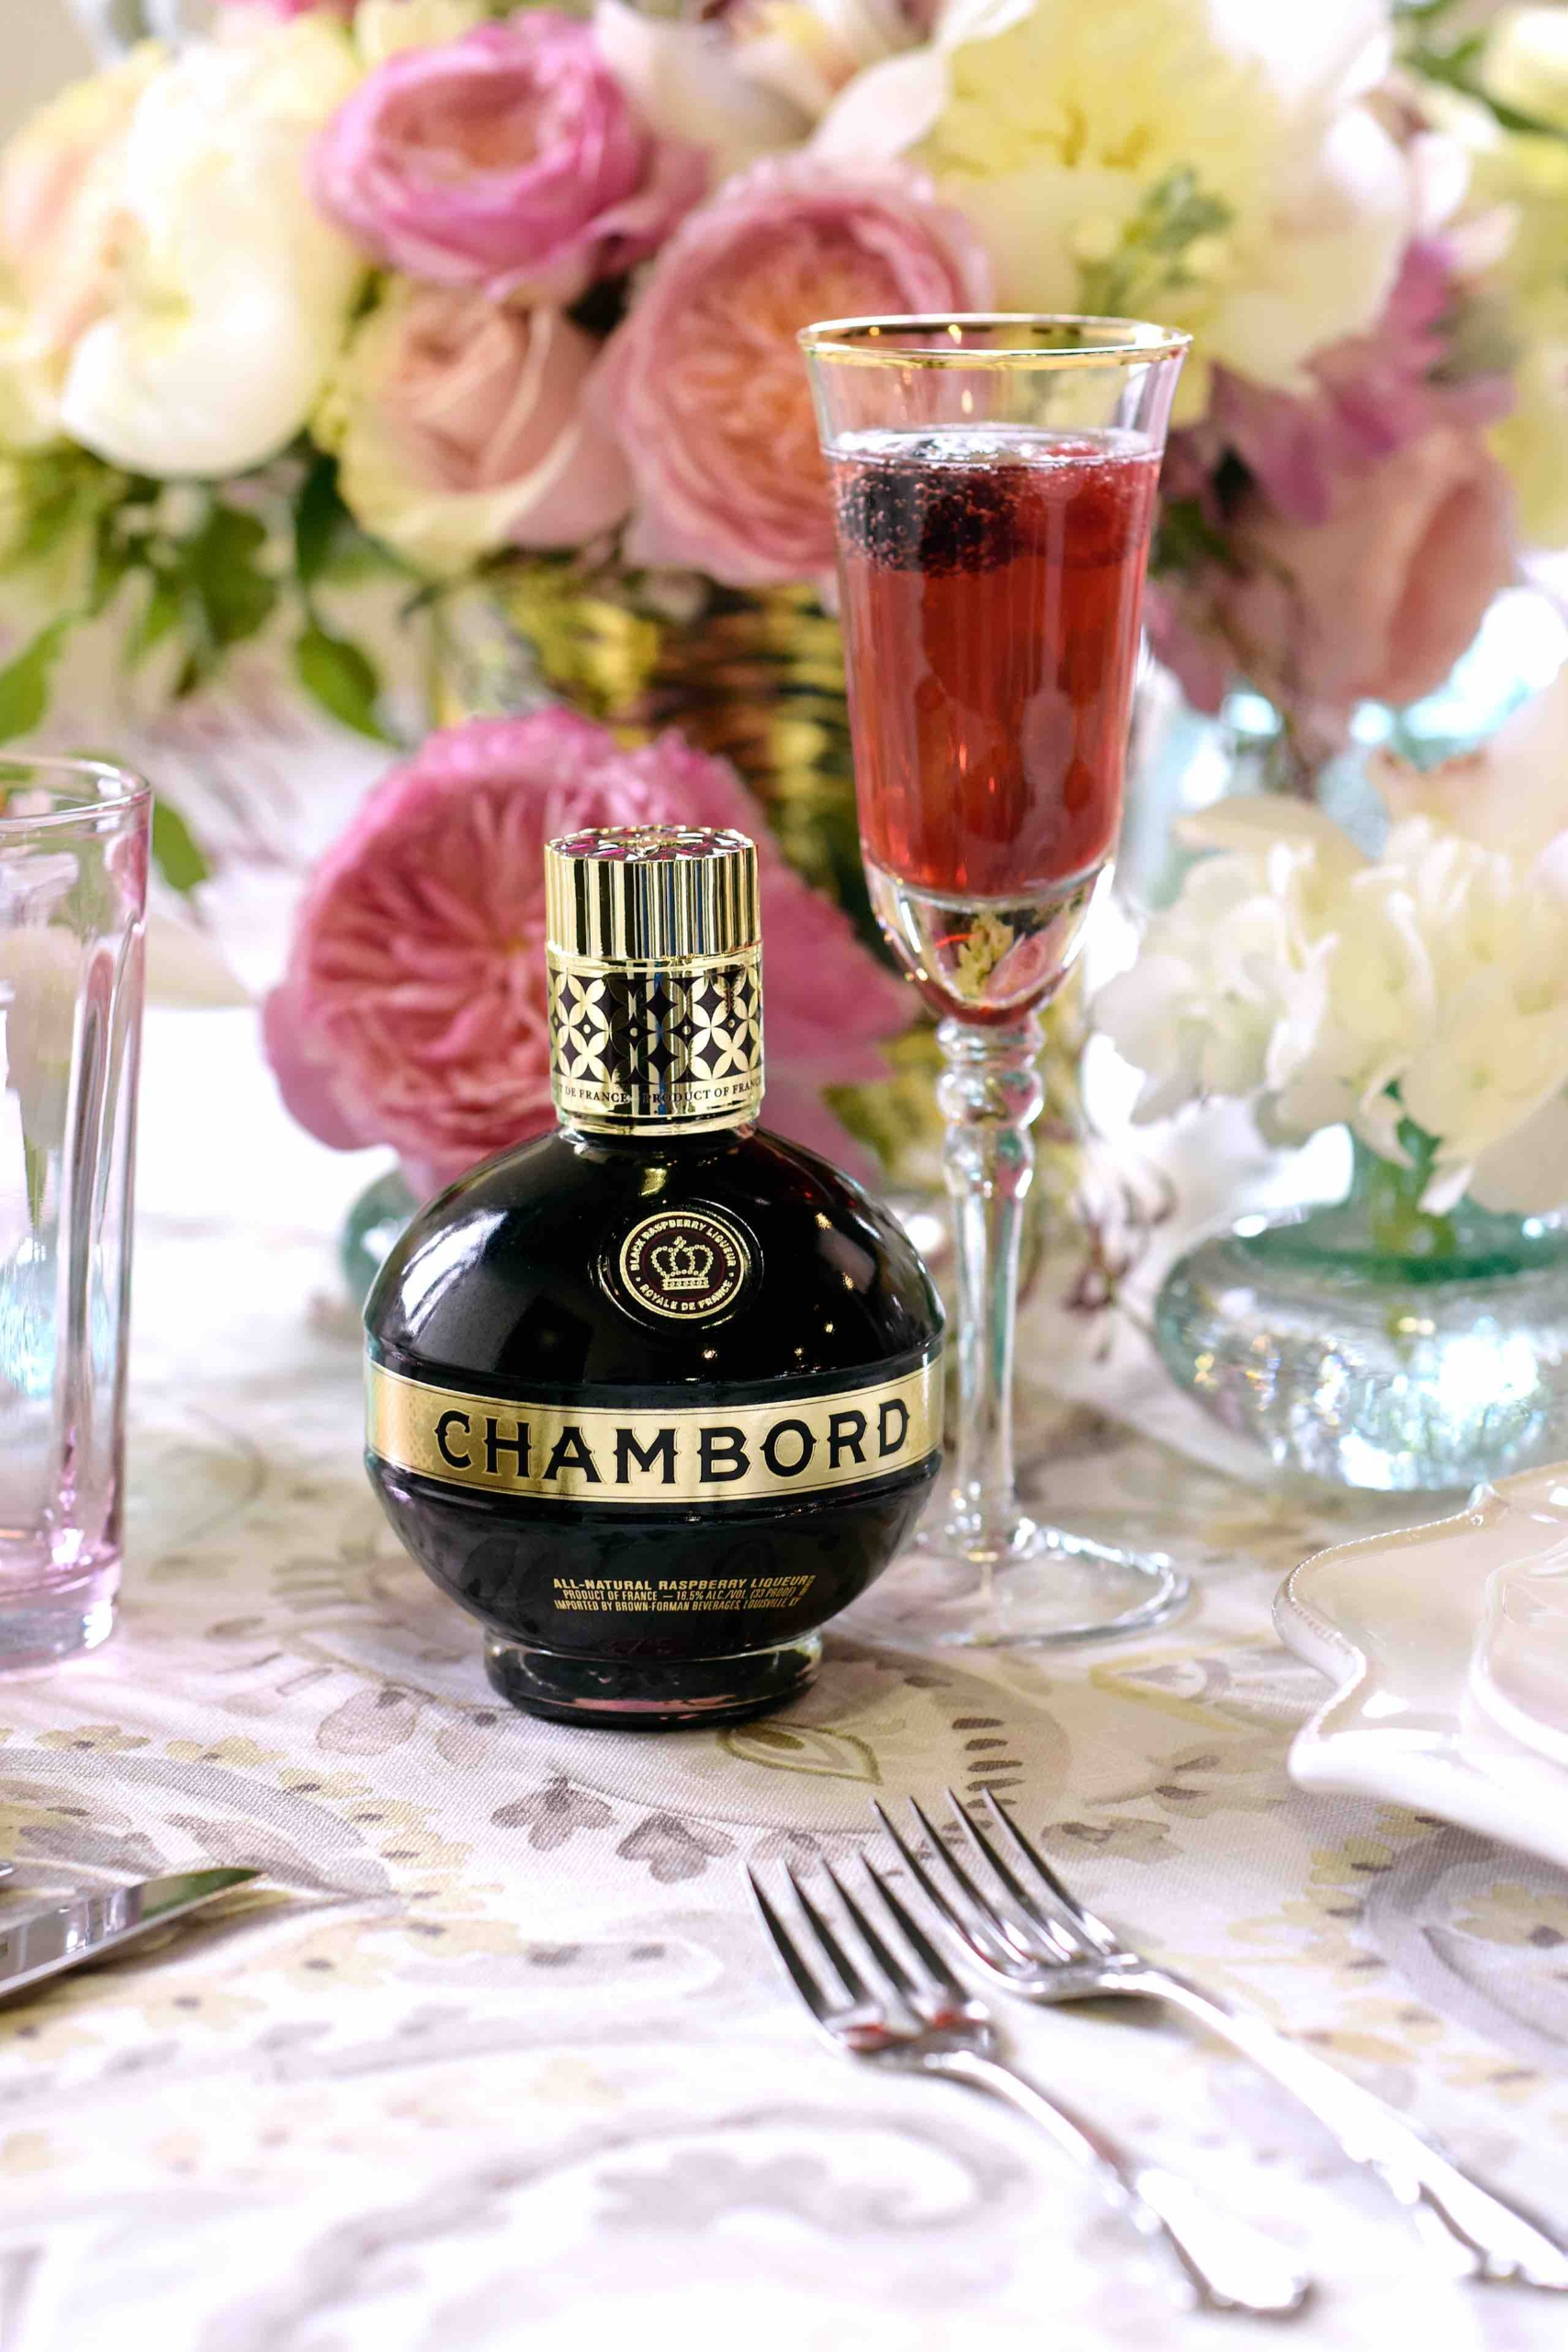 Try These Festive Champagne Cocktails To Ring In The New Year